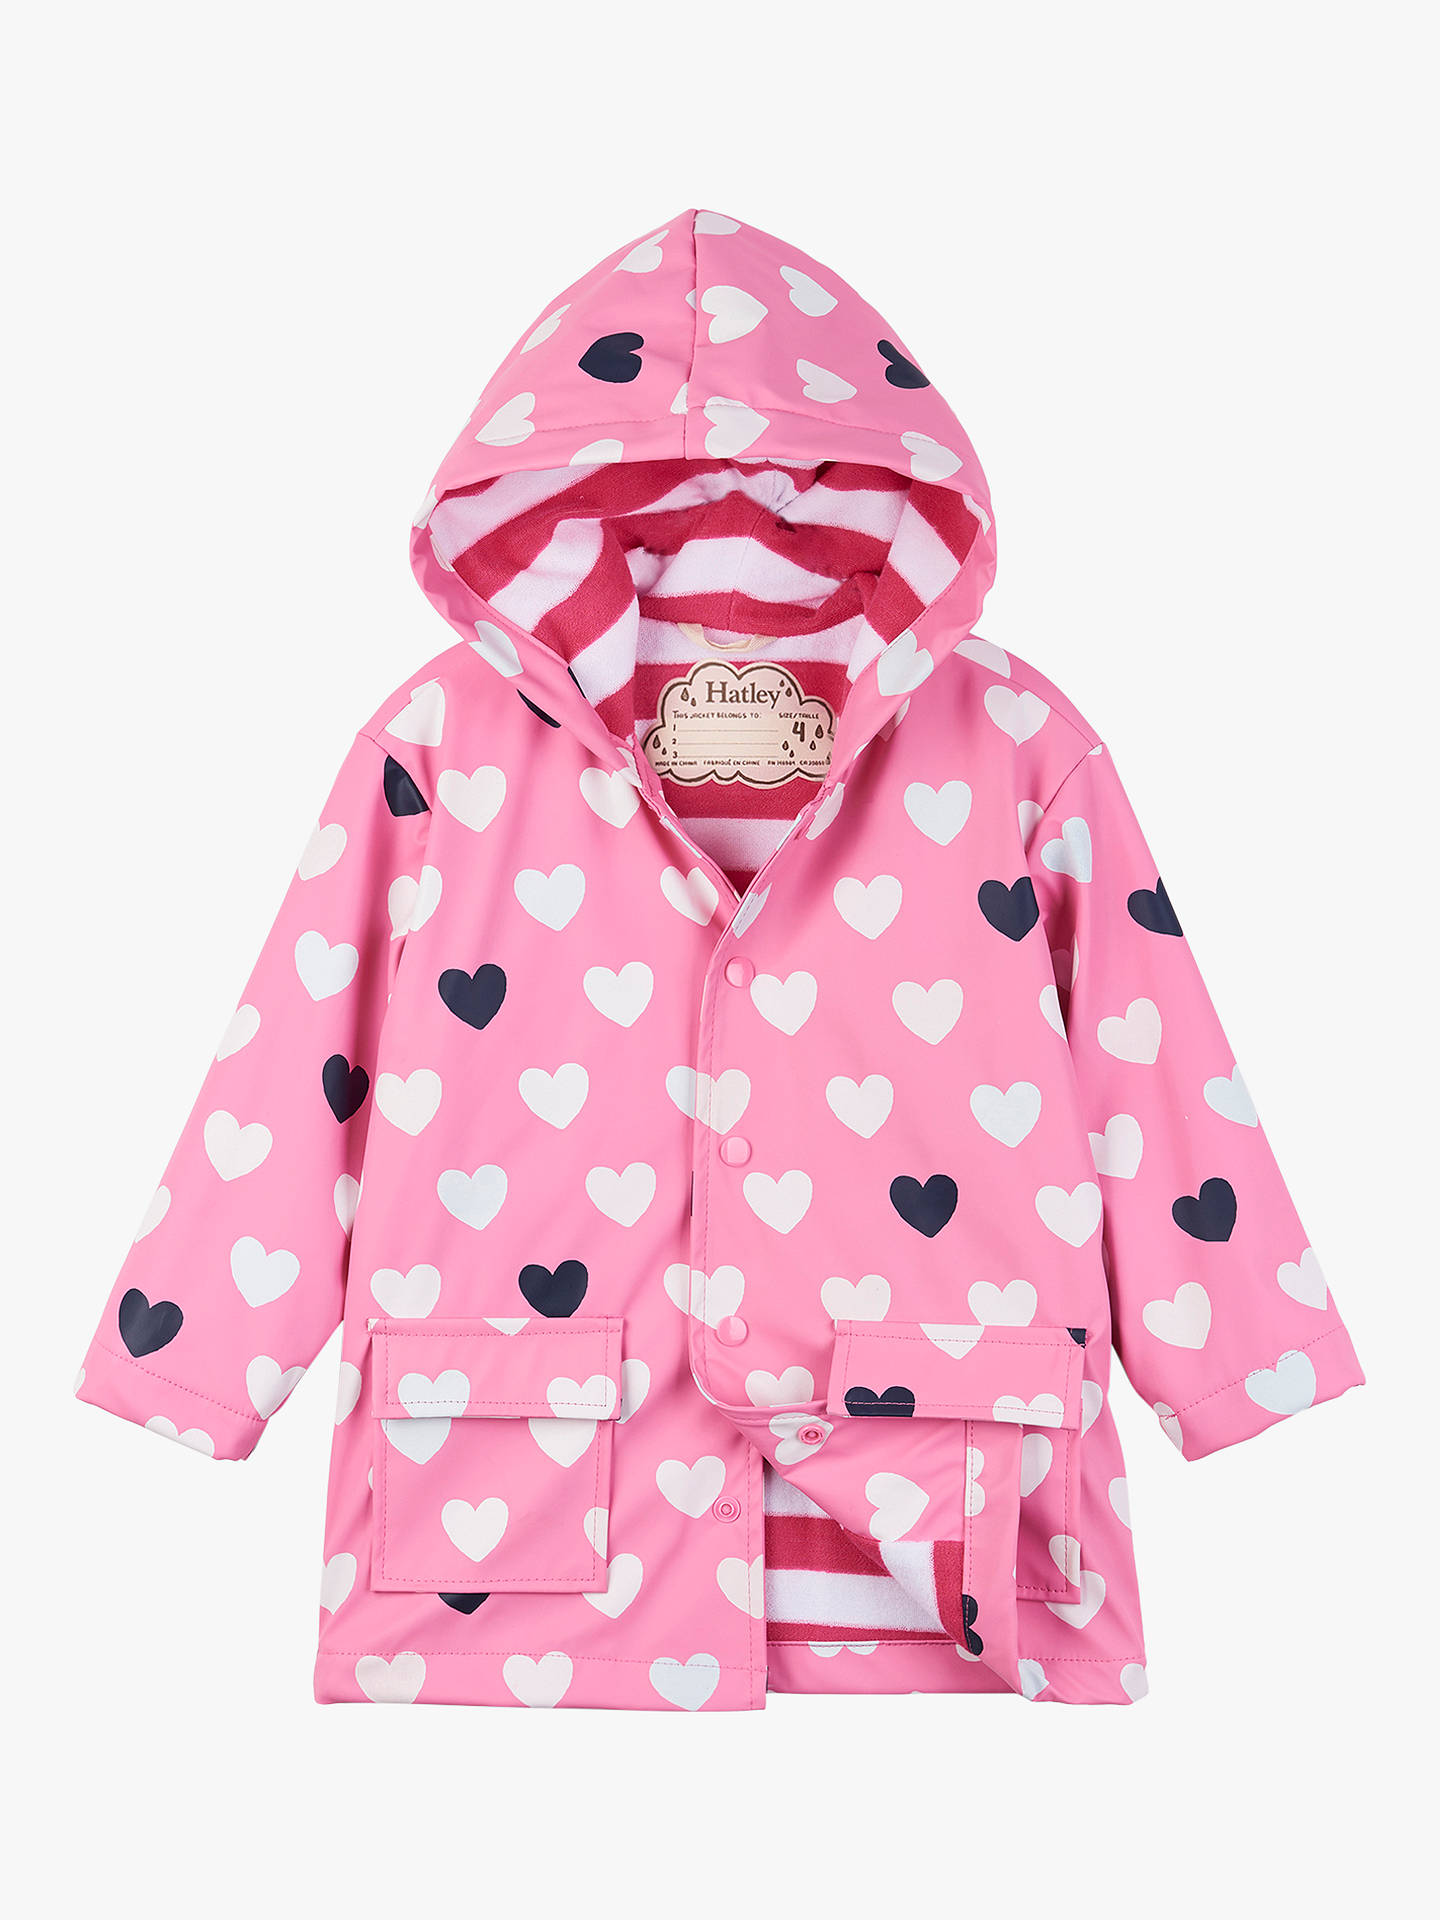 32e132c1c Buy Hatley Girls' Colour Changing Hearts Raincoat, Pink, 2 years Online at  johnlewis ...